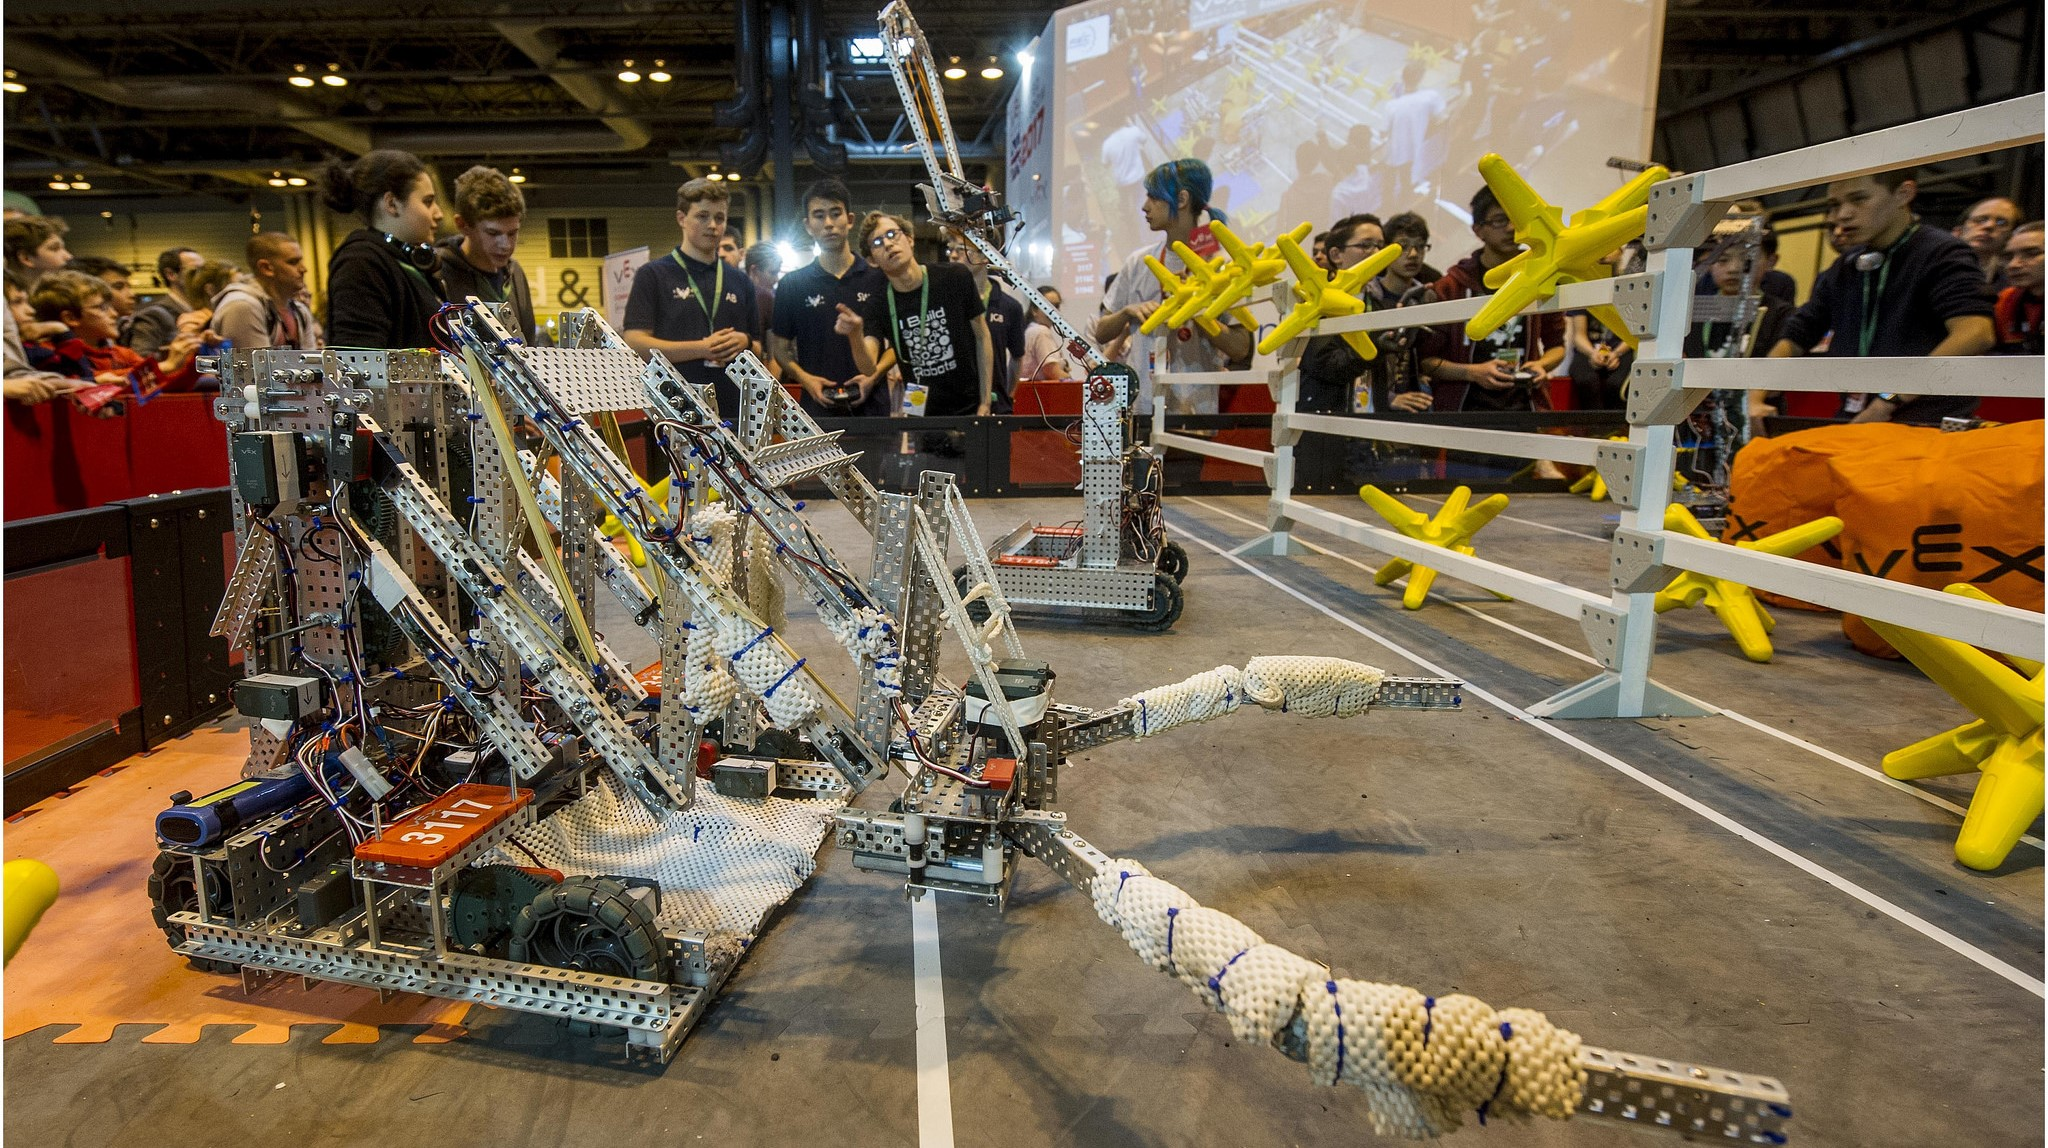 New College Lanarkshire: VEX Robotics Competition